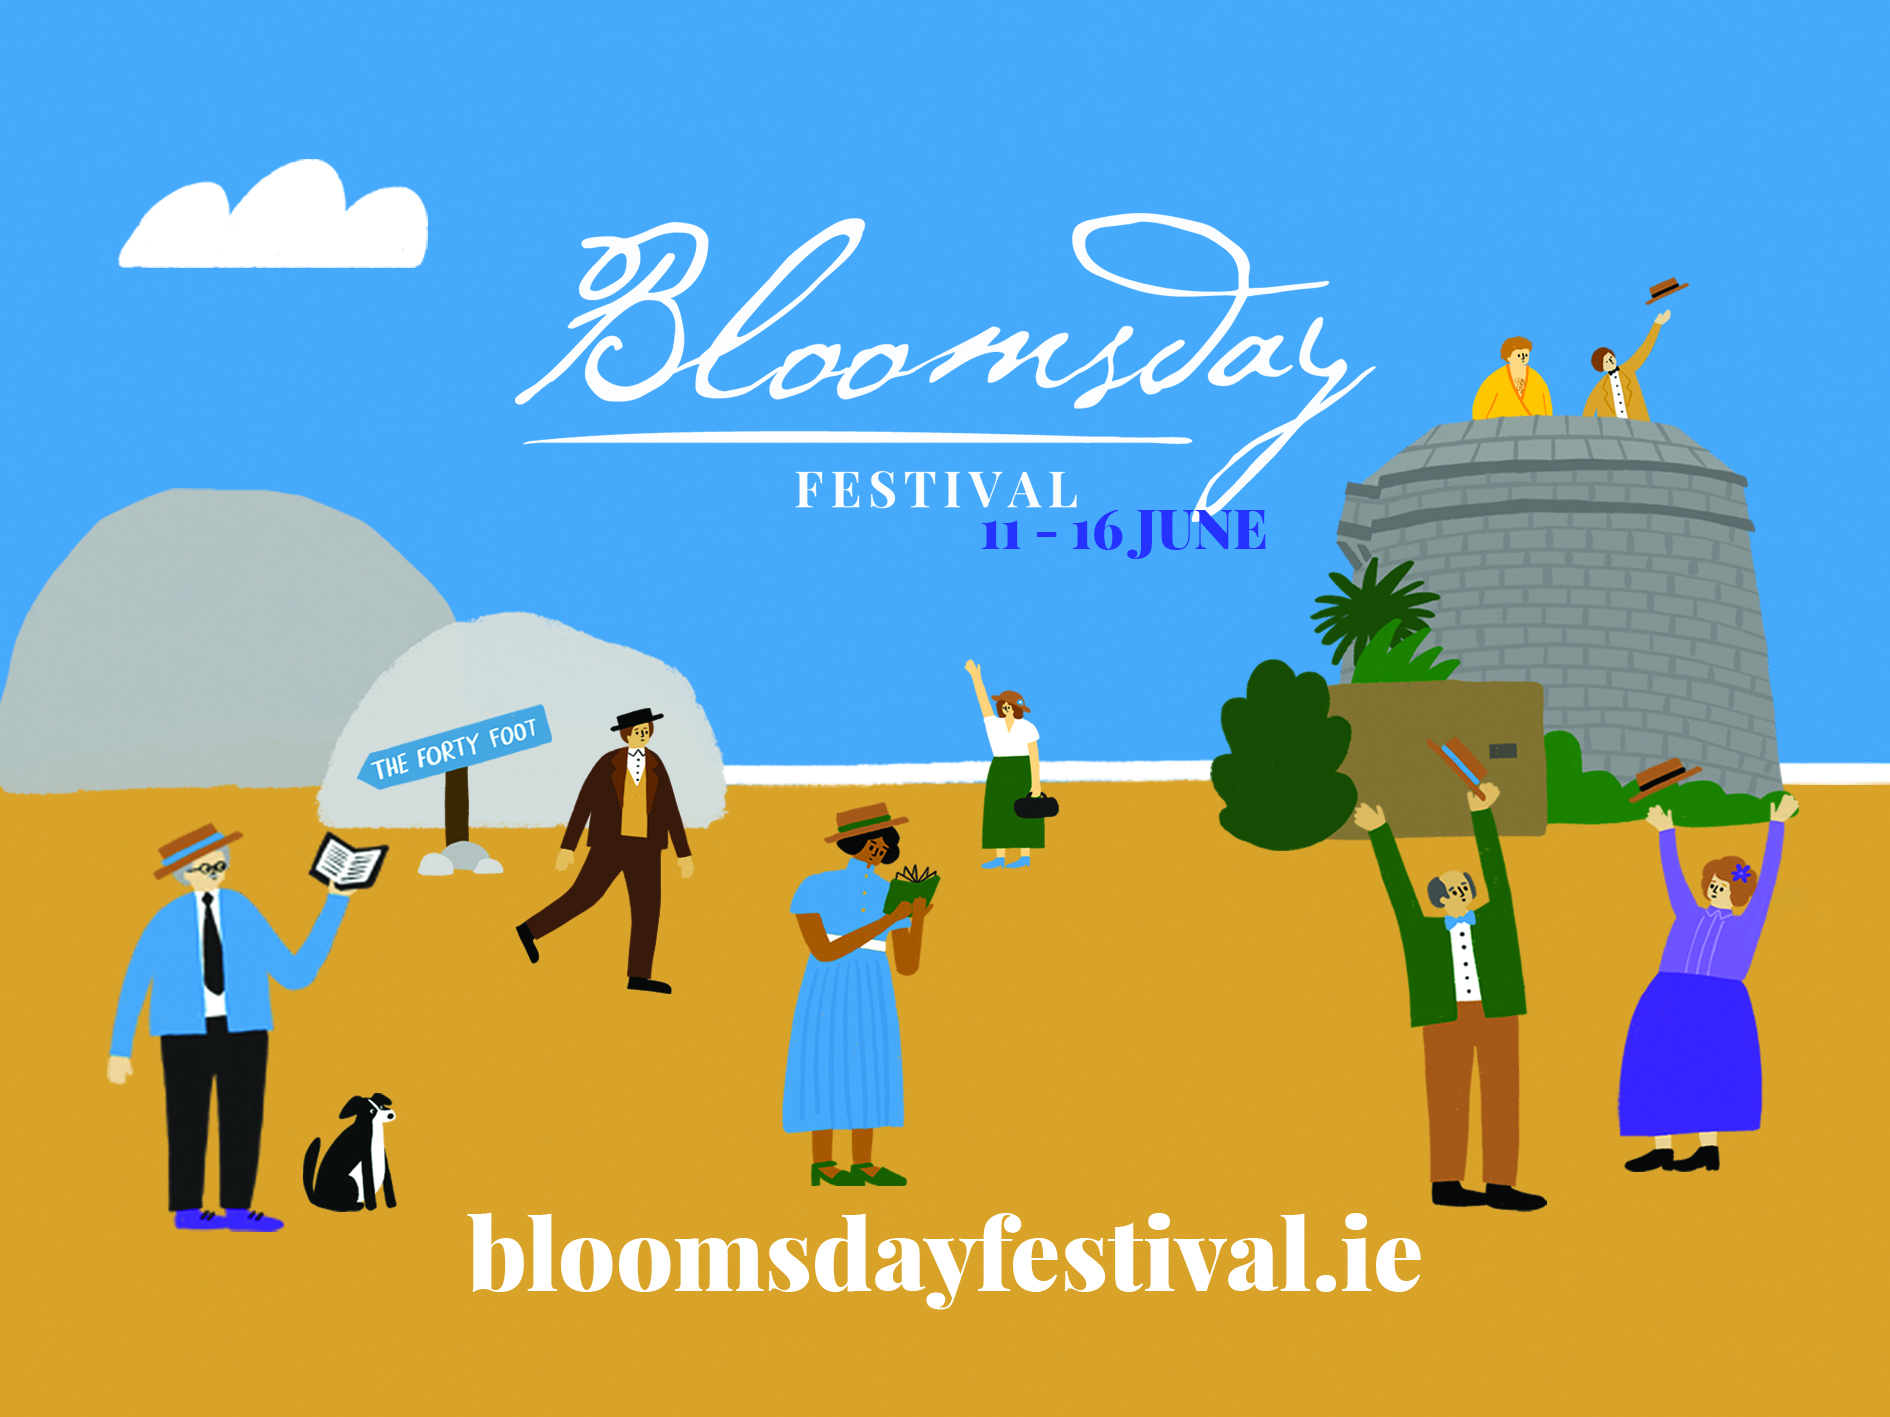 Bloomsday Festival Graphic 2021